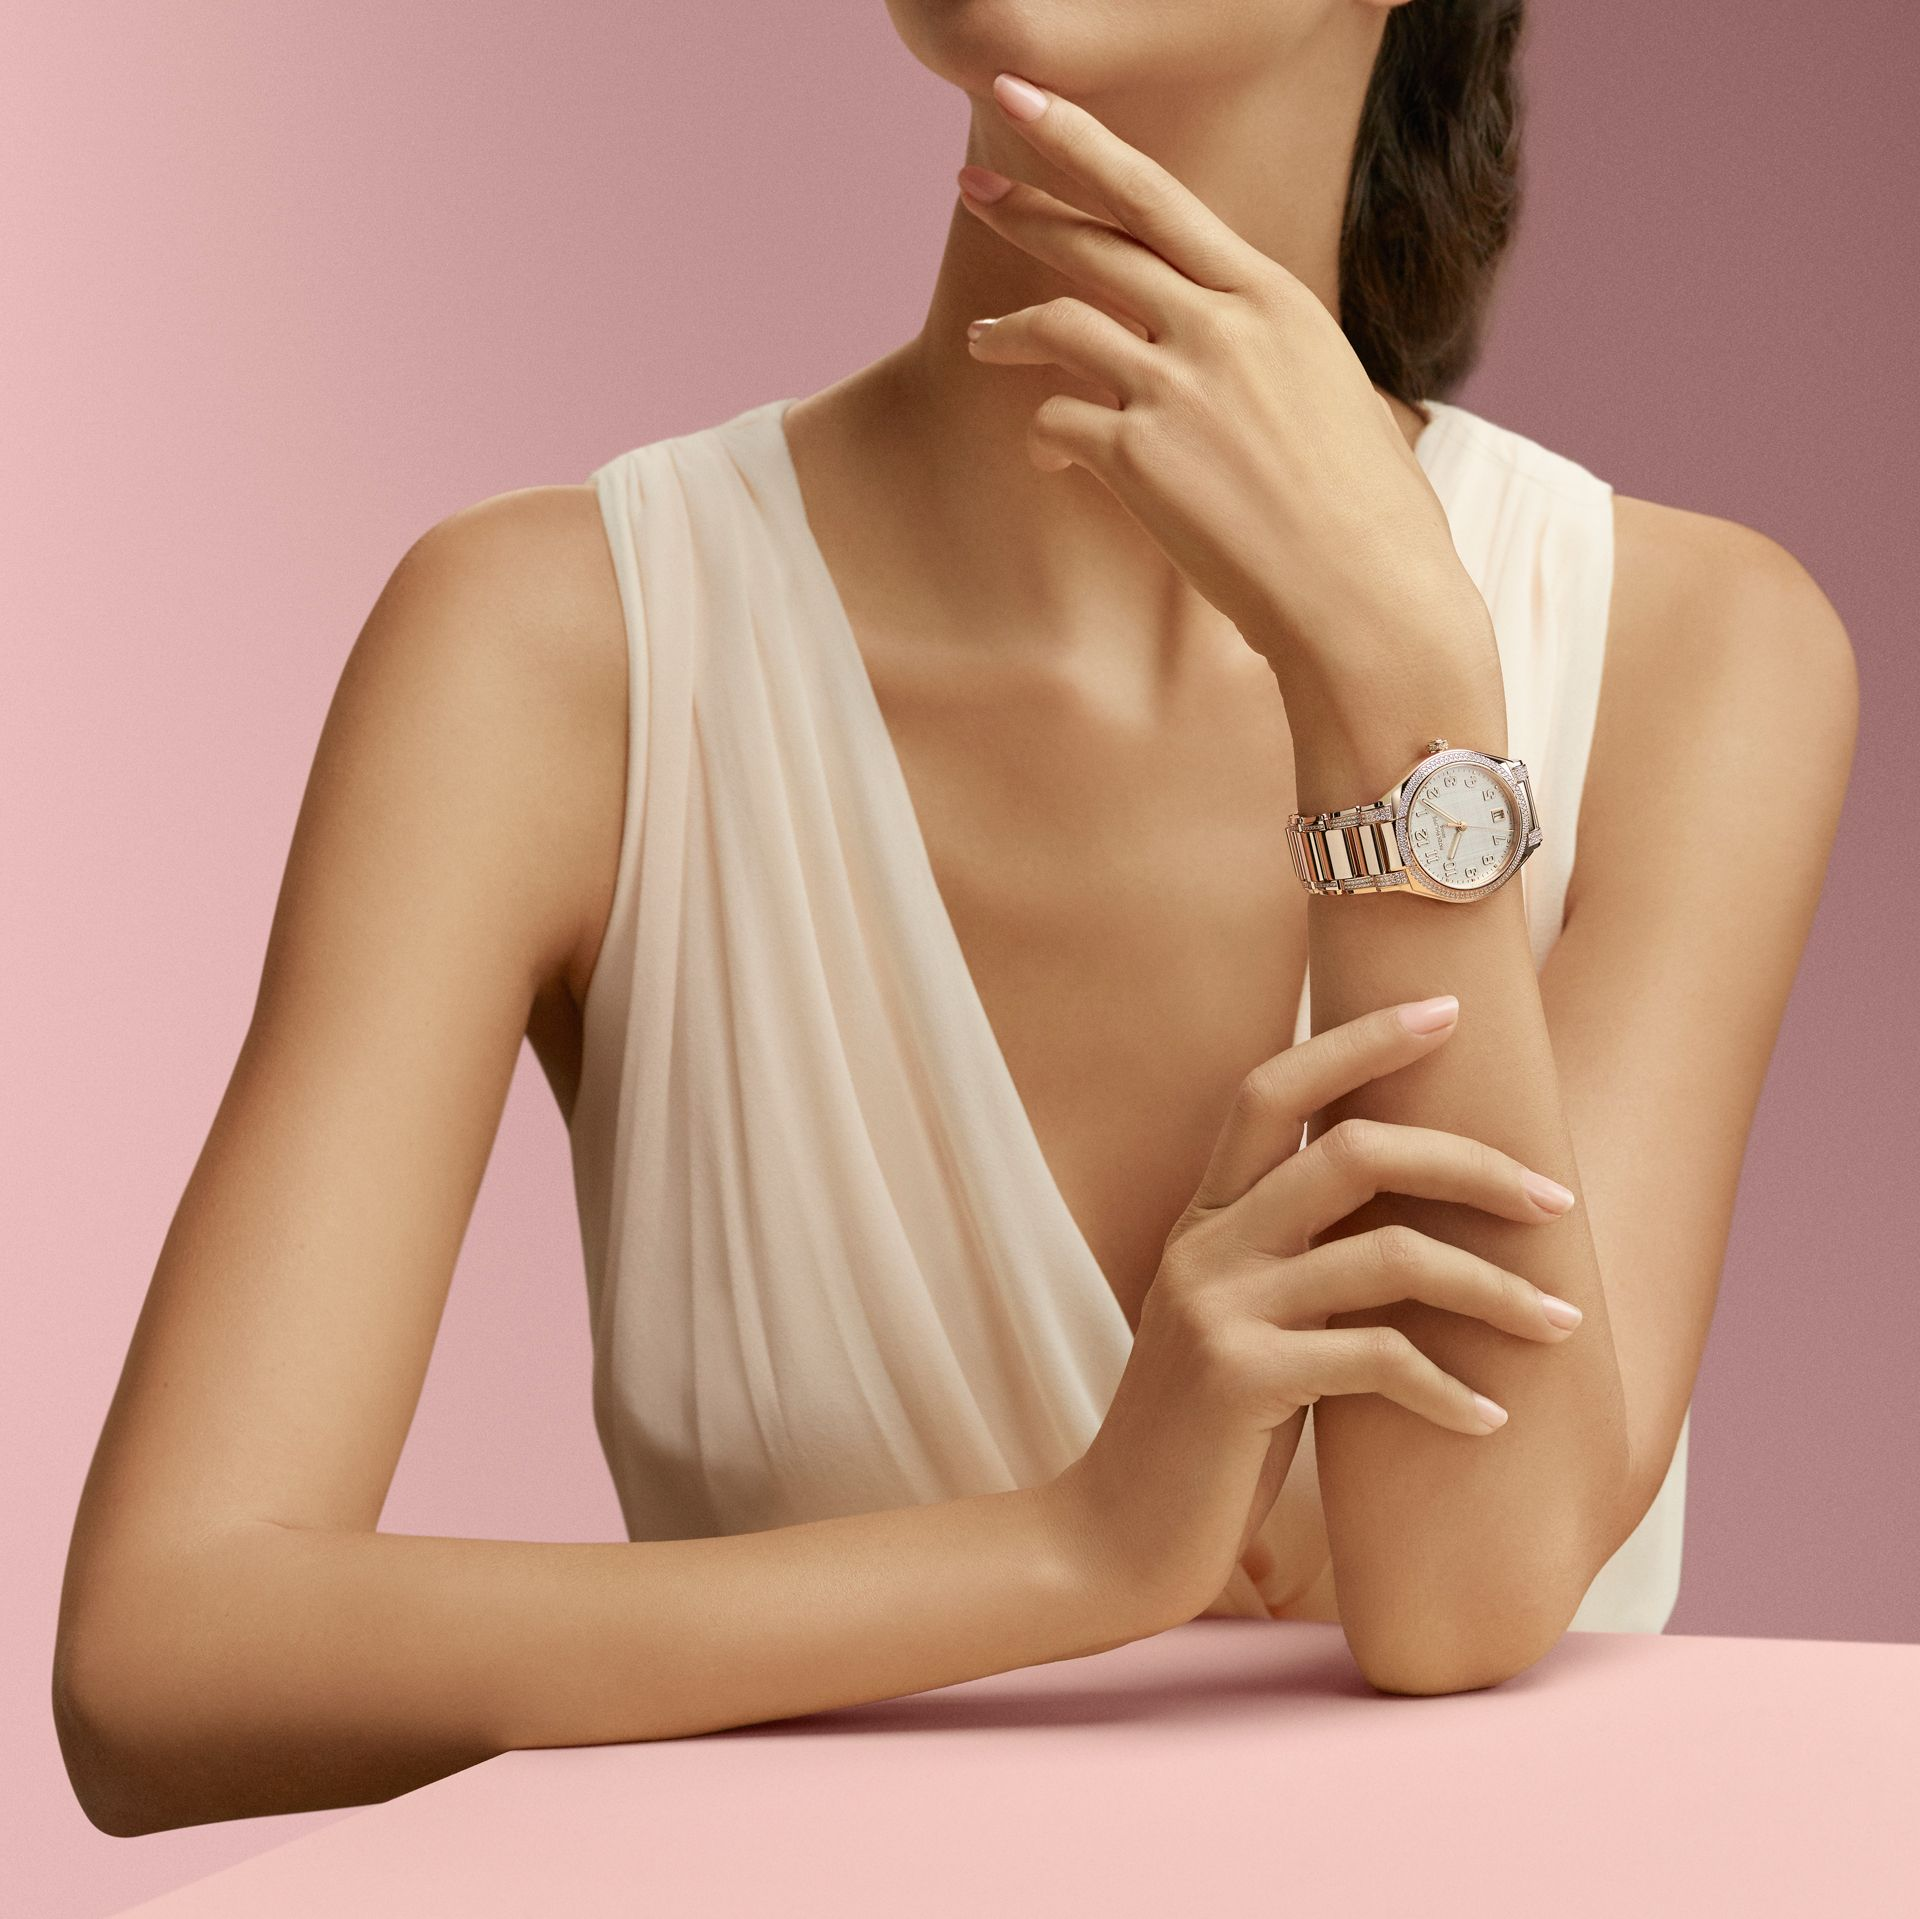 Why Women Should Invest In Timeless Timepieces